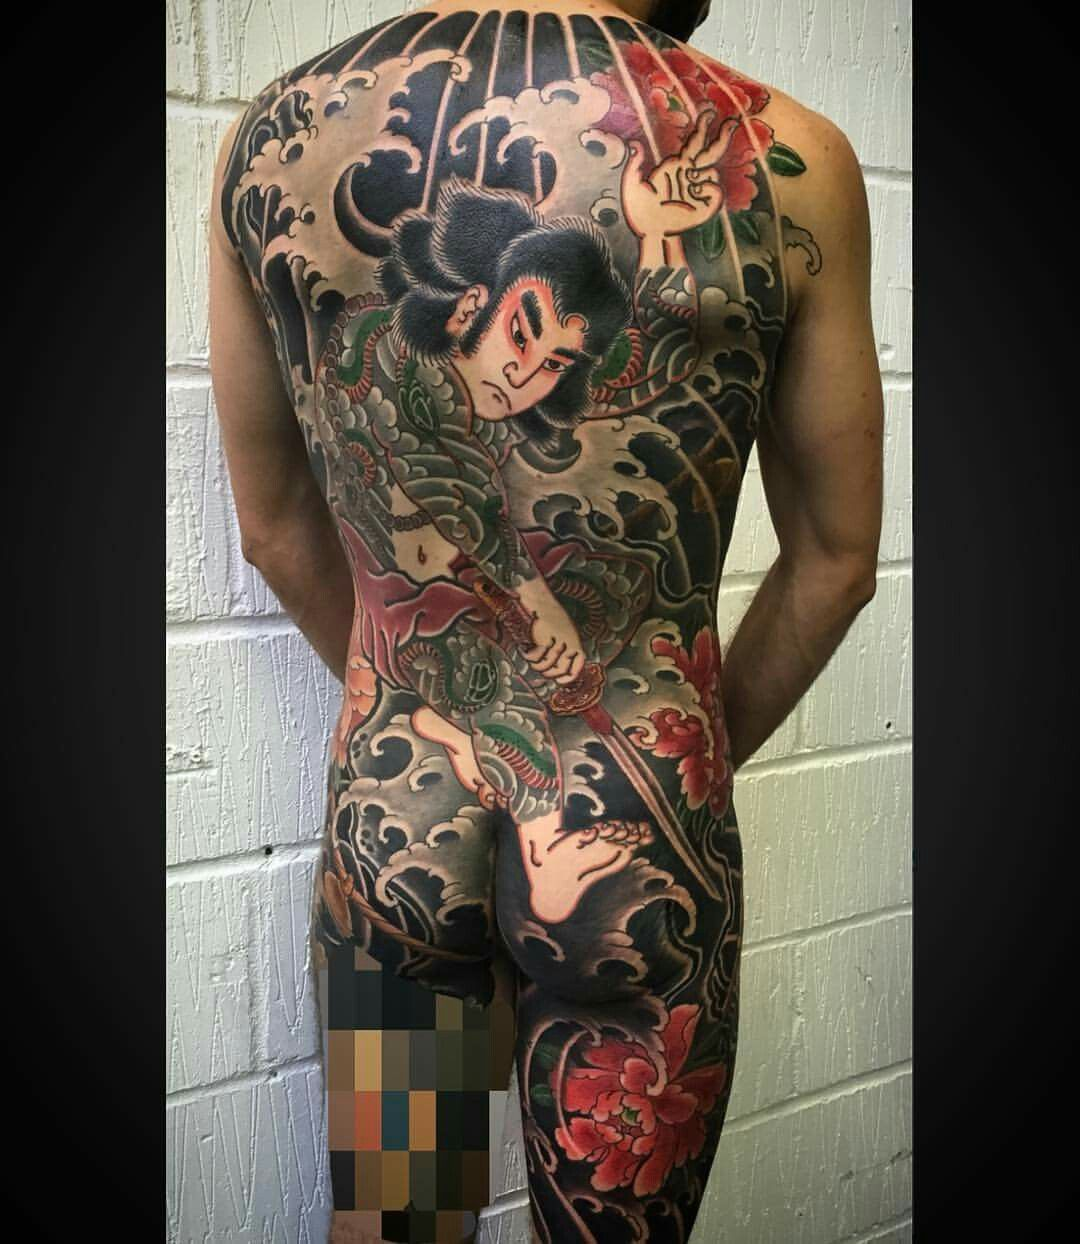 Pin by mark tourtillot on tattoos pinterest japanese tattoos and